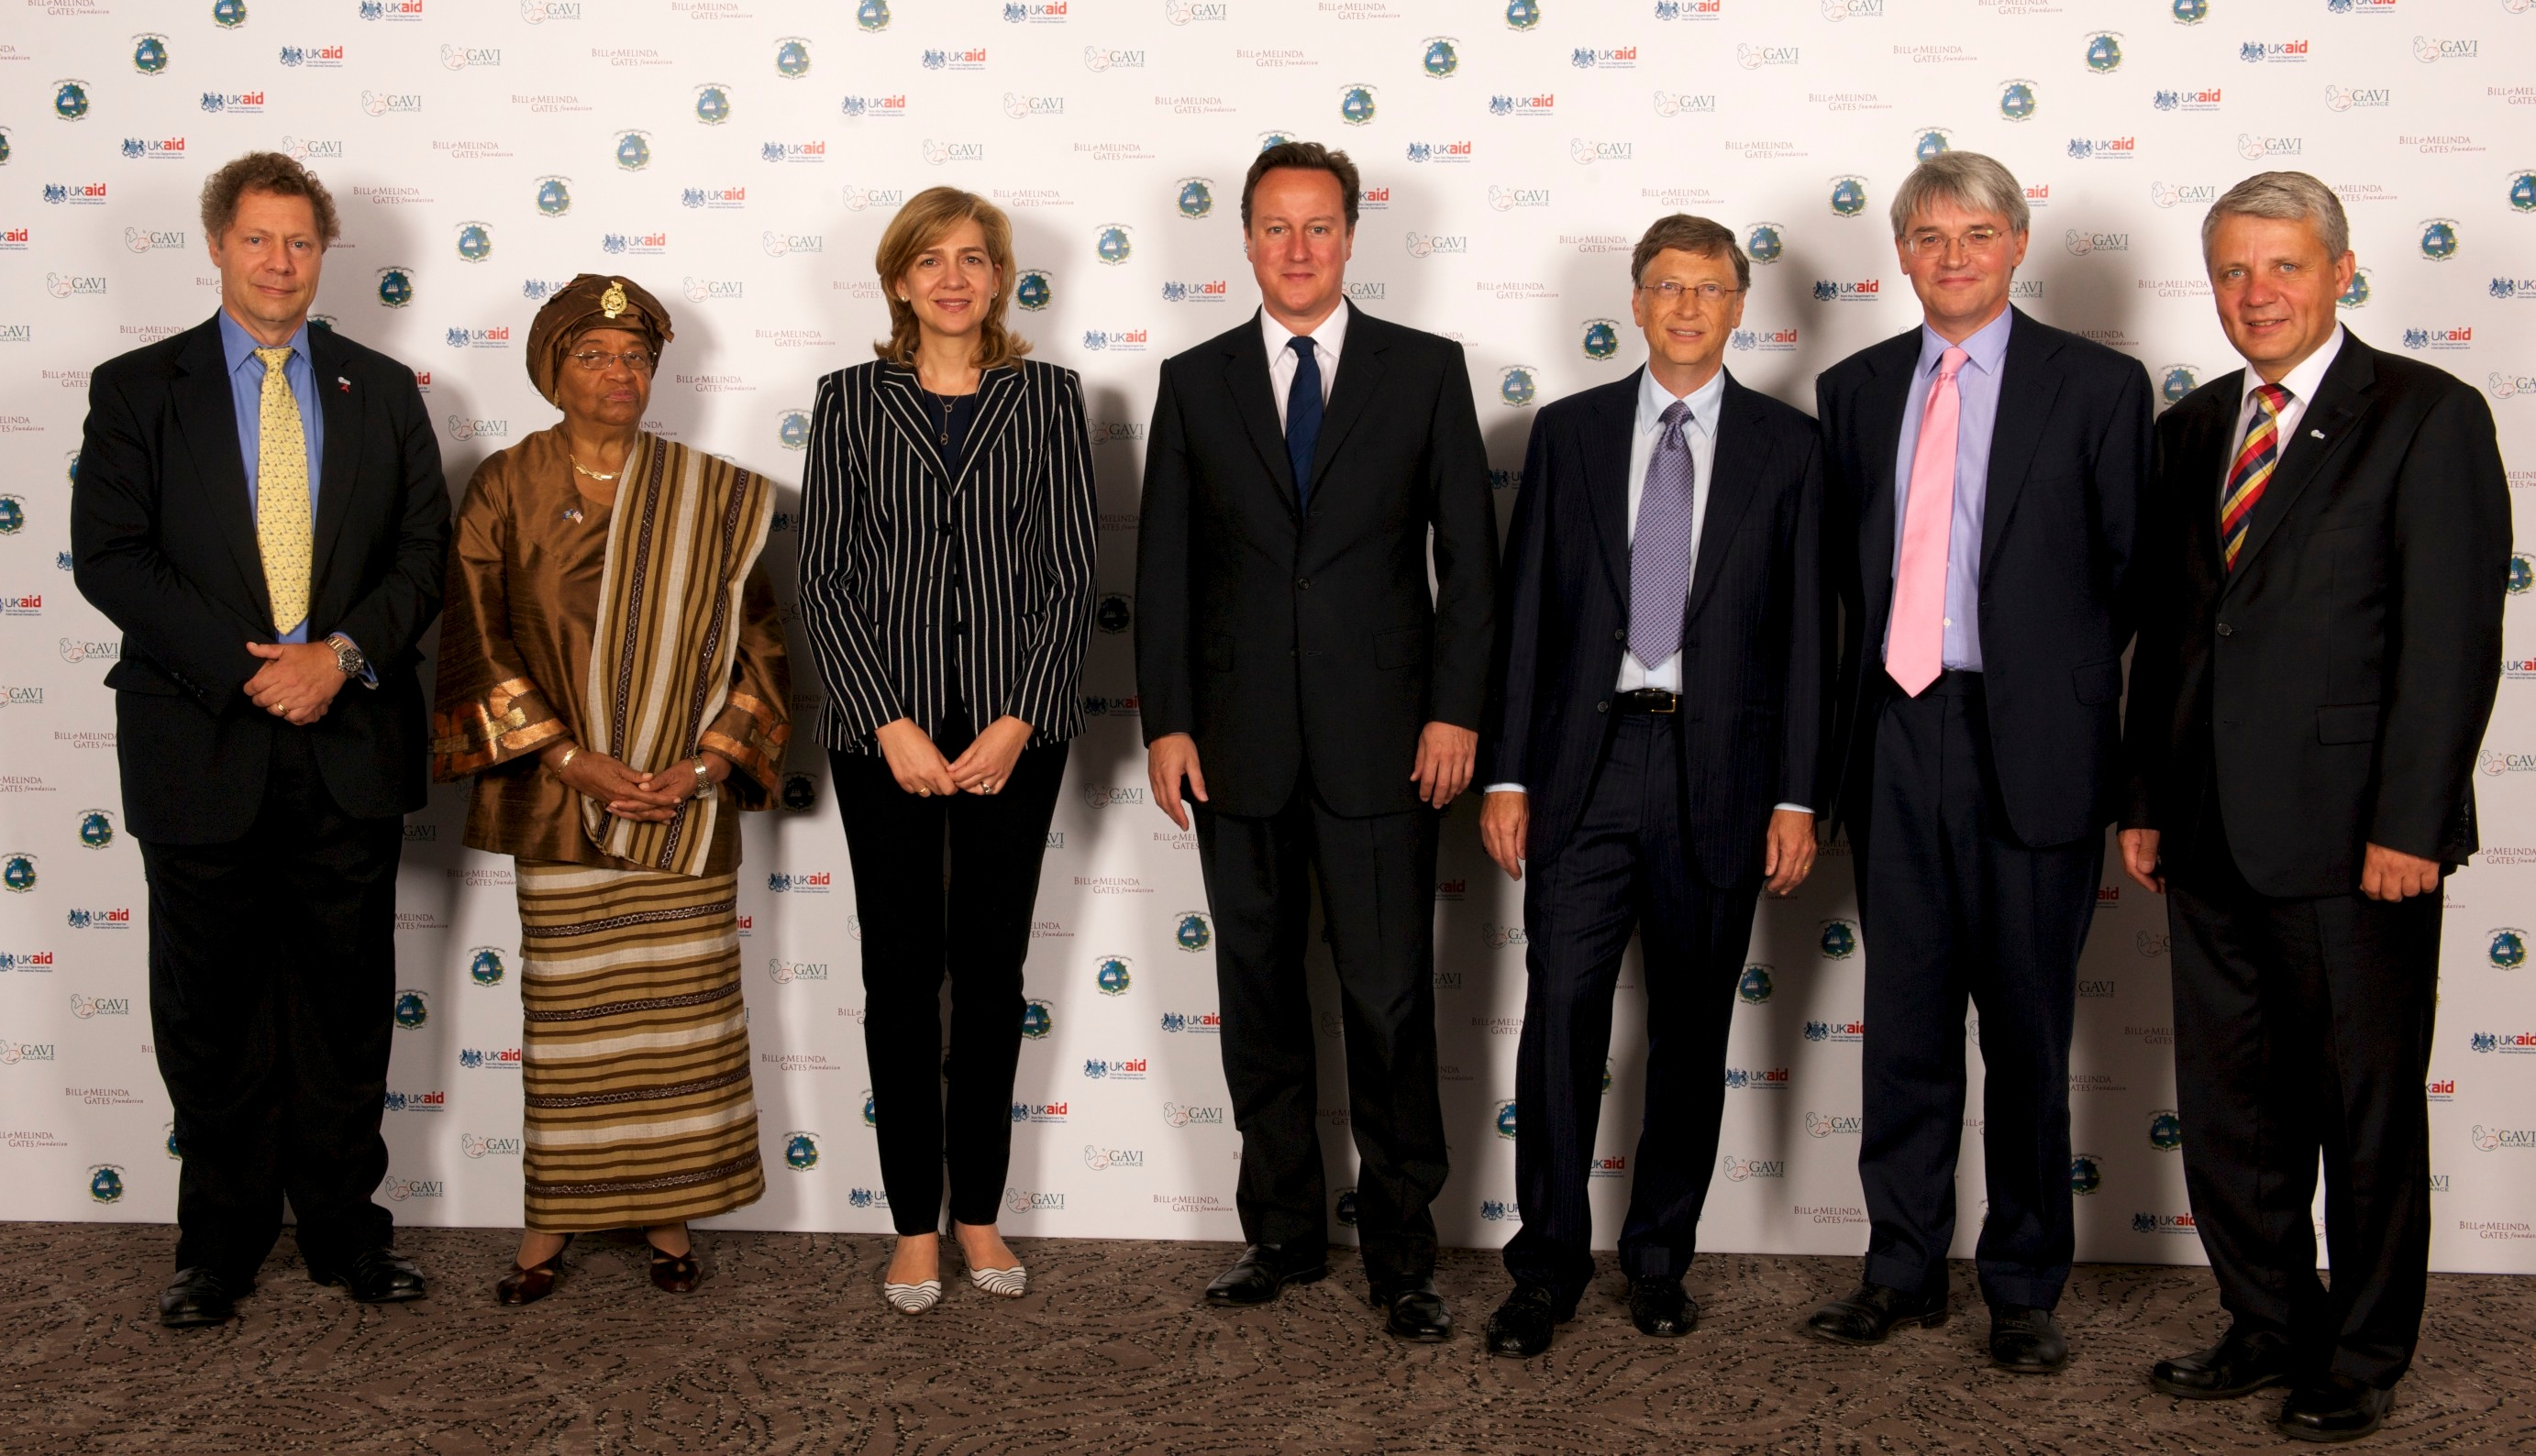 David Cameron, Andrew Mitchell, Bill Gates and Ellen Johnson-Sirleaf, together with members of the GAVI board